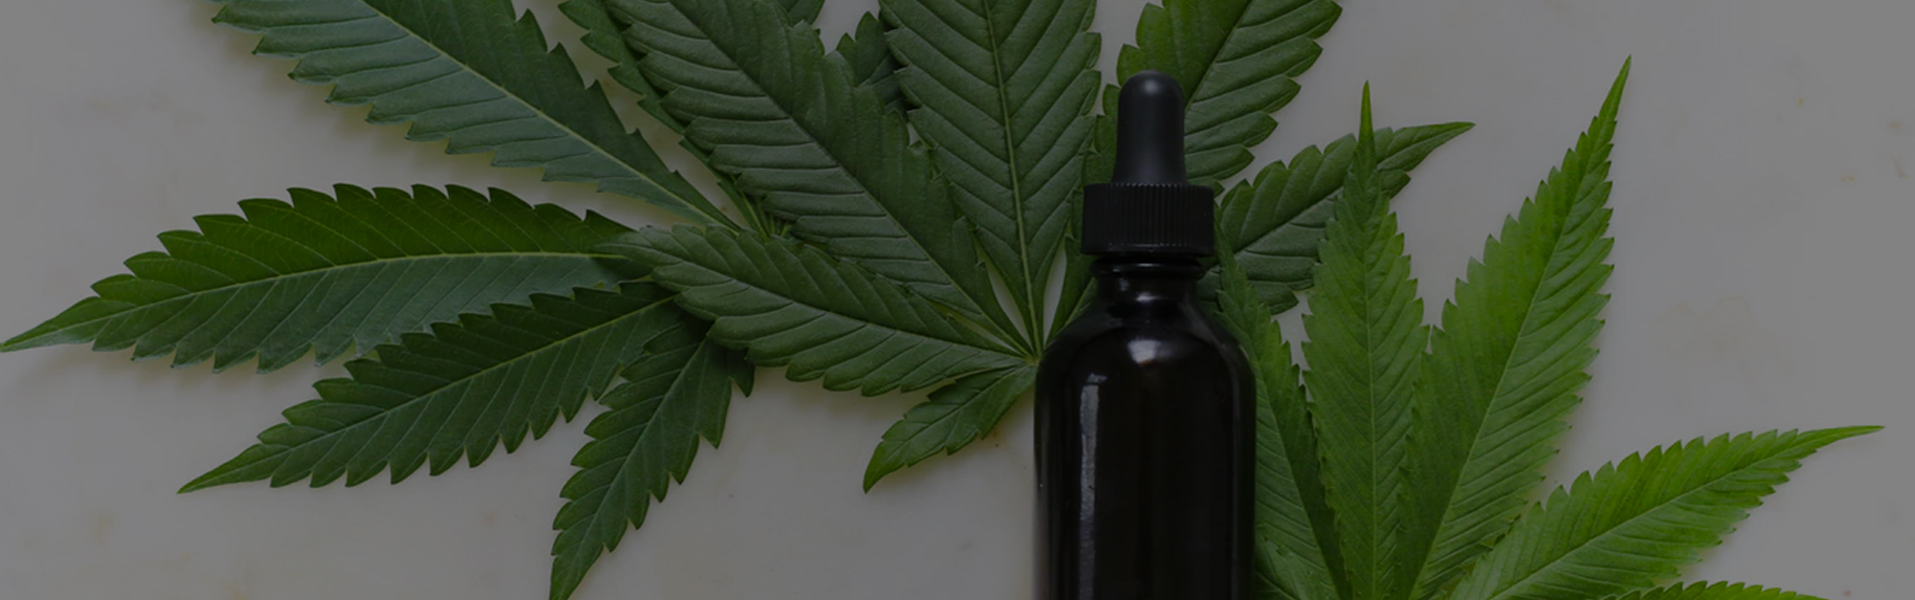 Shipping CBD Oil: Is It Legal? | ShipCalm